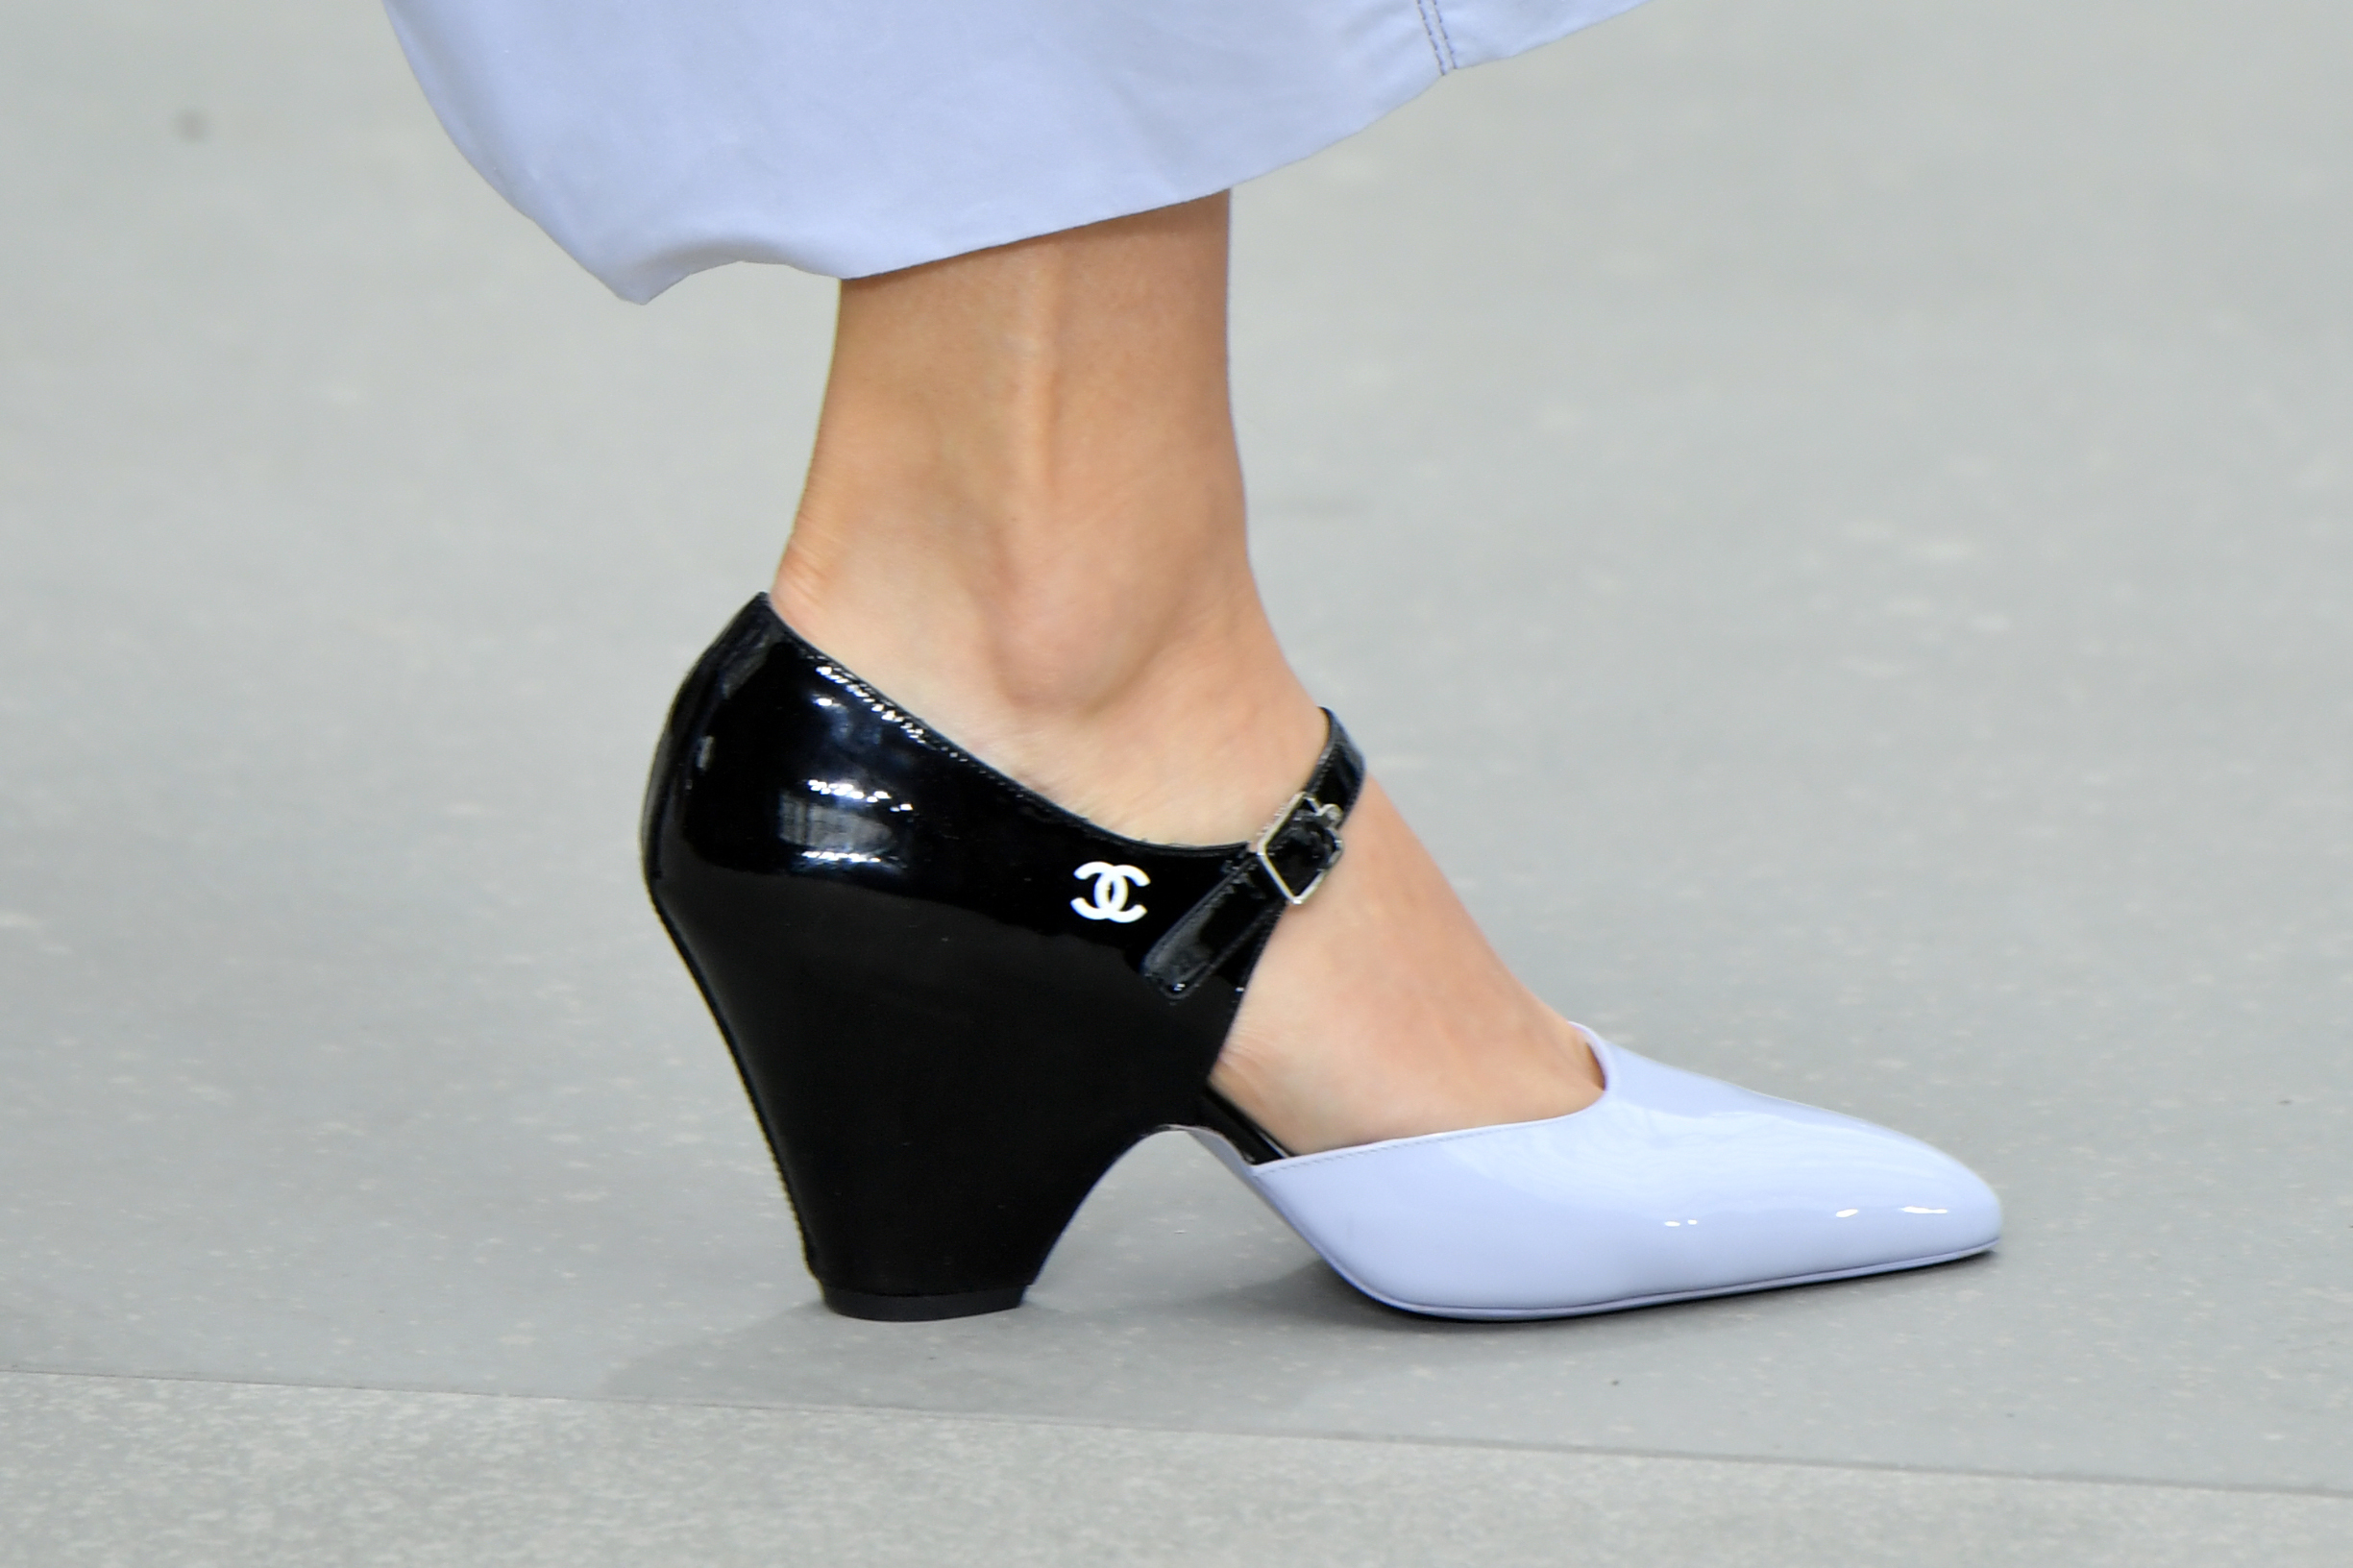 PARIS, FRANCE - MAY 03: A model,shoe detail, walks the runway during Chanel Cruise 2020 Collection at Le Grand Palais on May 03, 2019 in Paris, France. (Photo by Pascal Le Segretain/Getty Images)